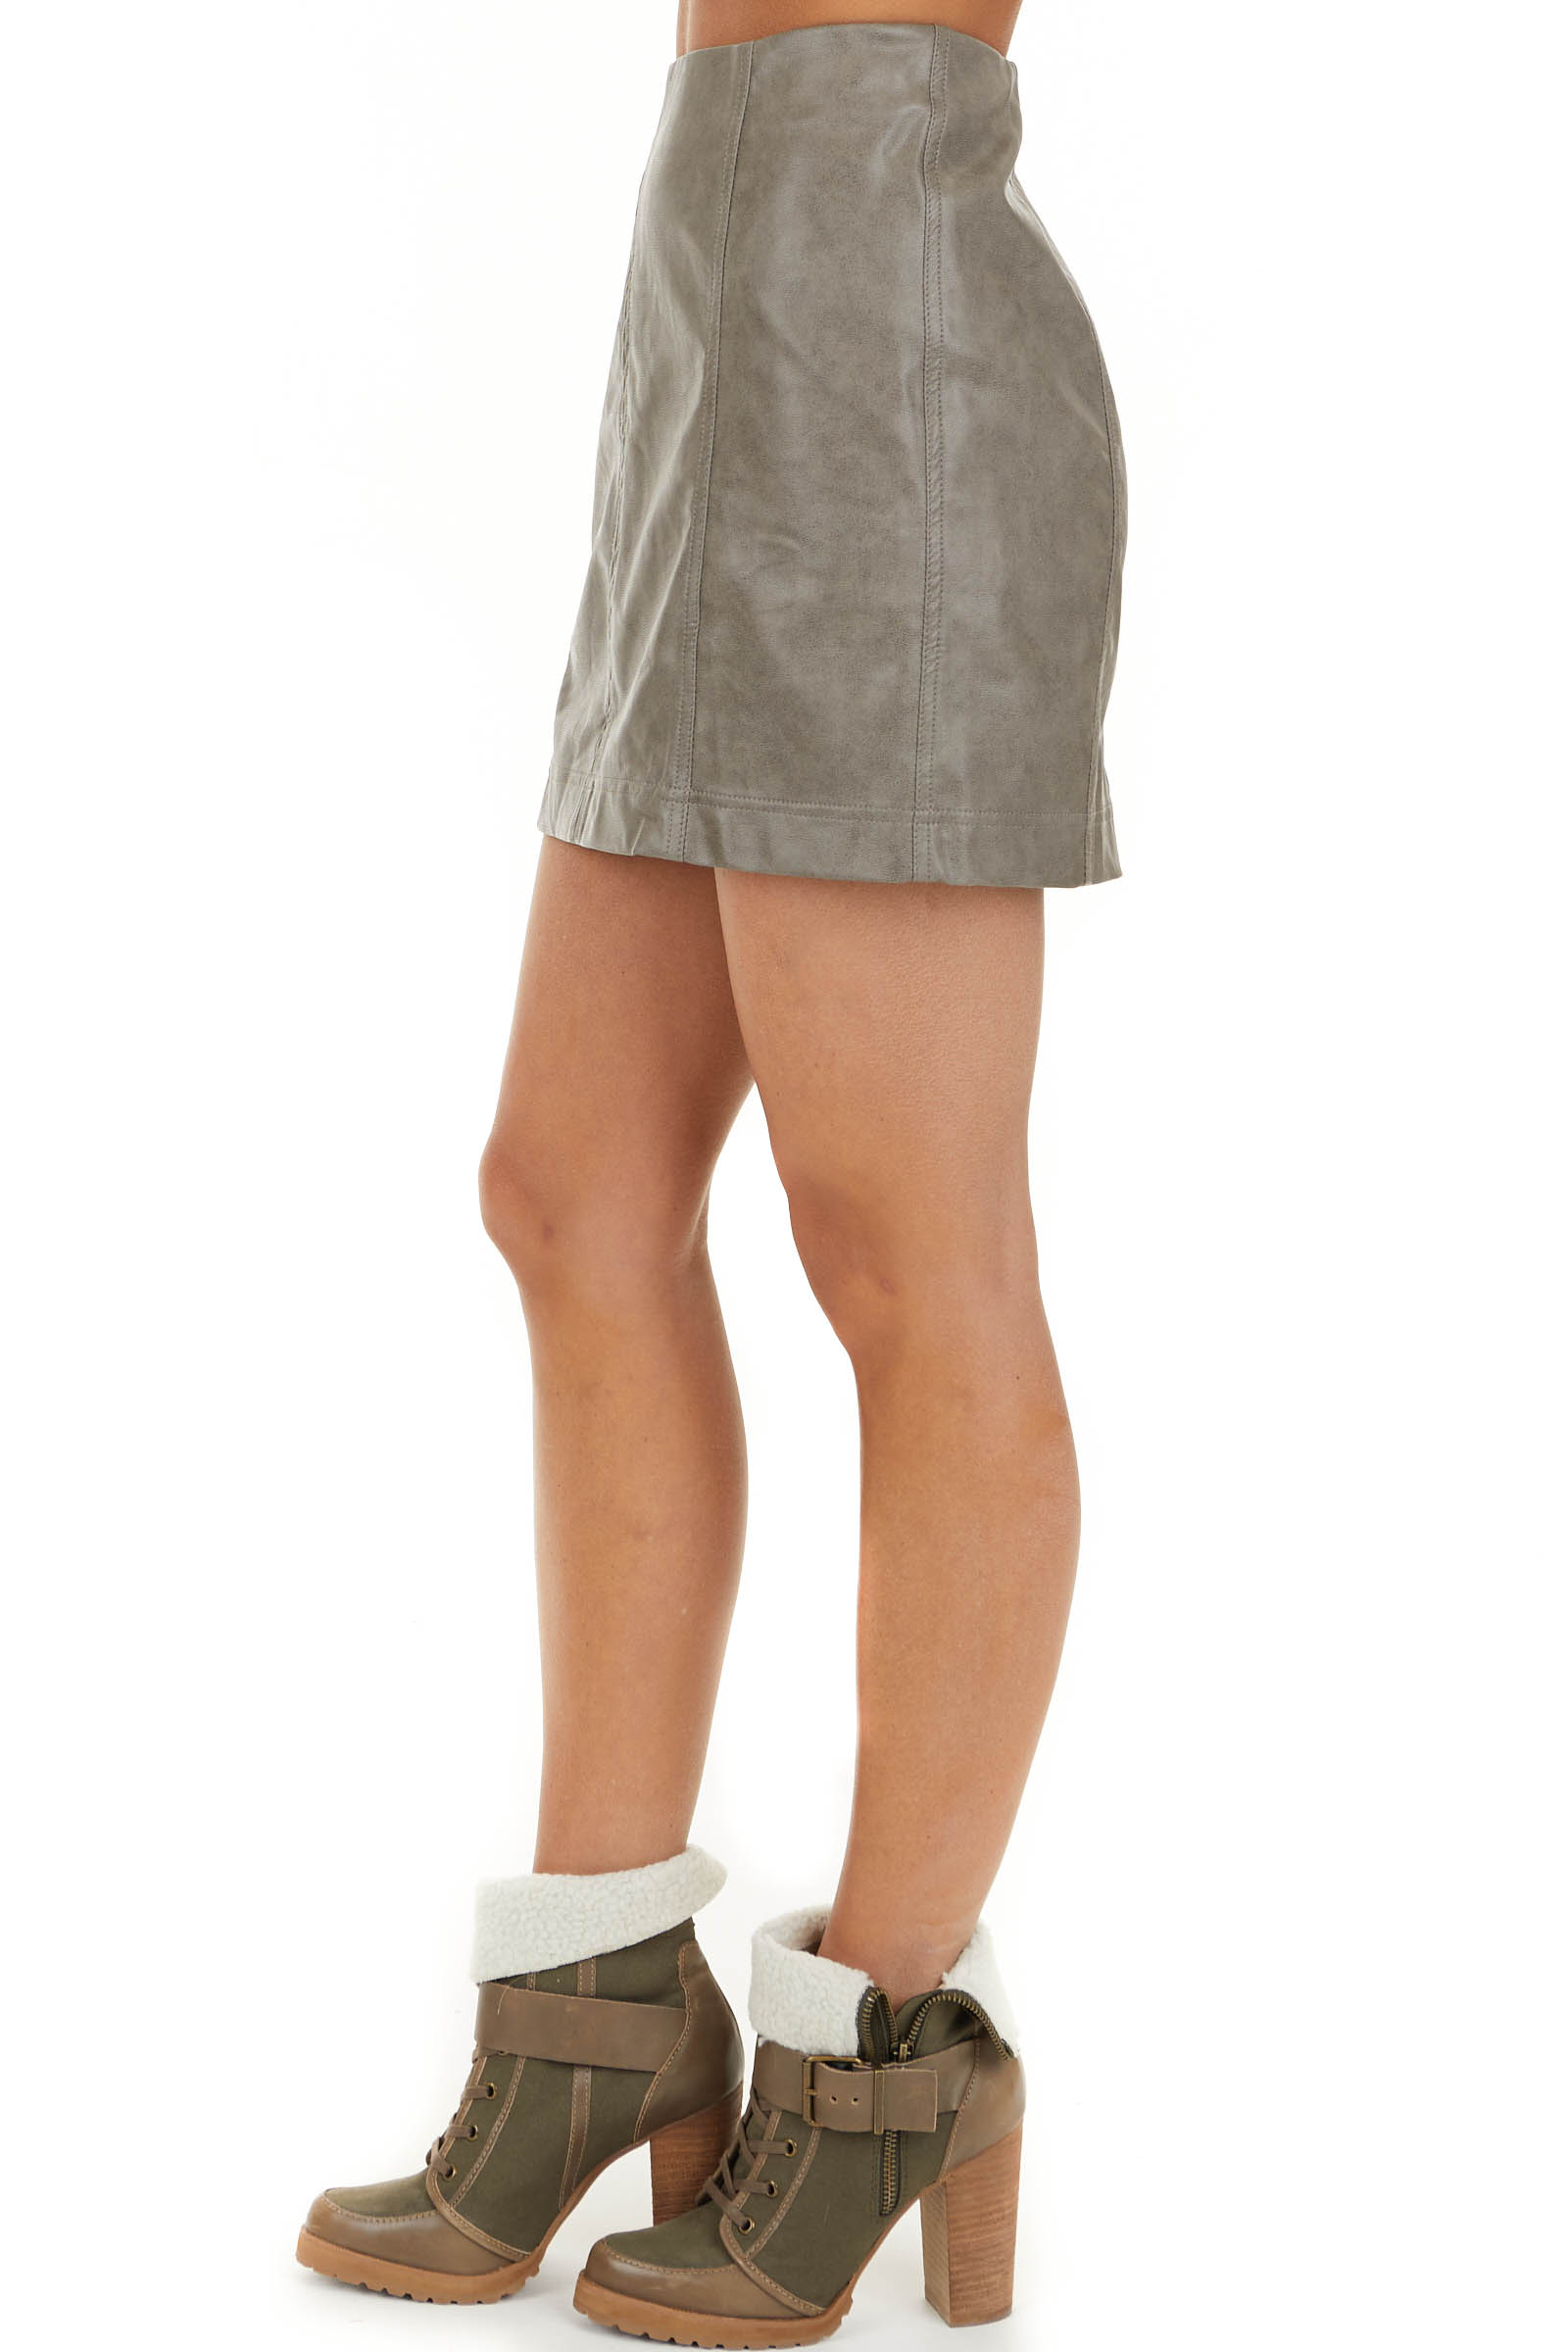 Taupe Faux Leather Fitted Mini Skirt with Zip Up Closure side view